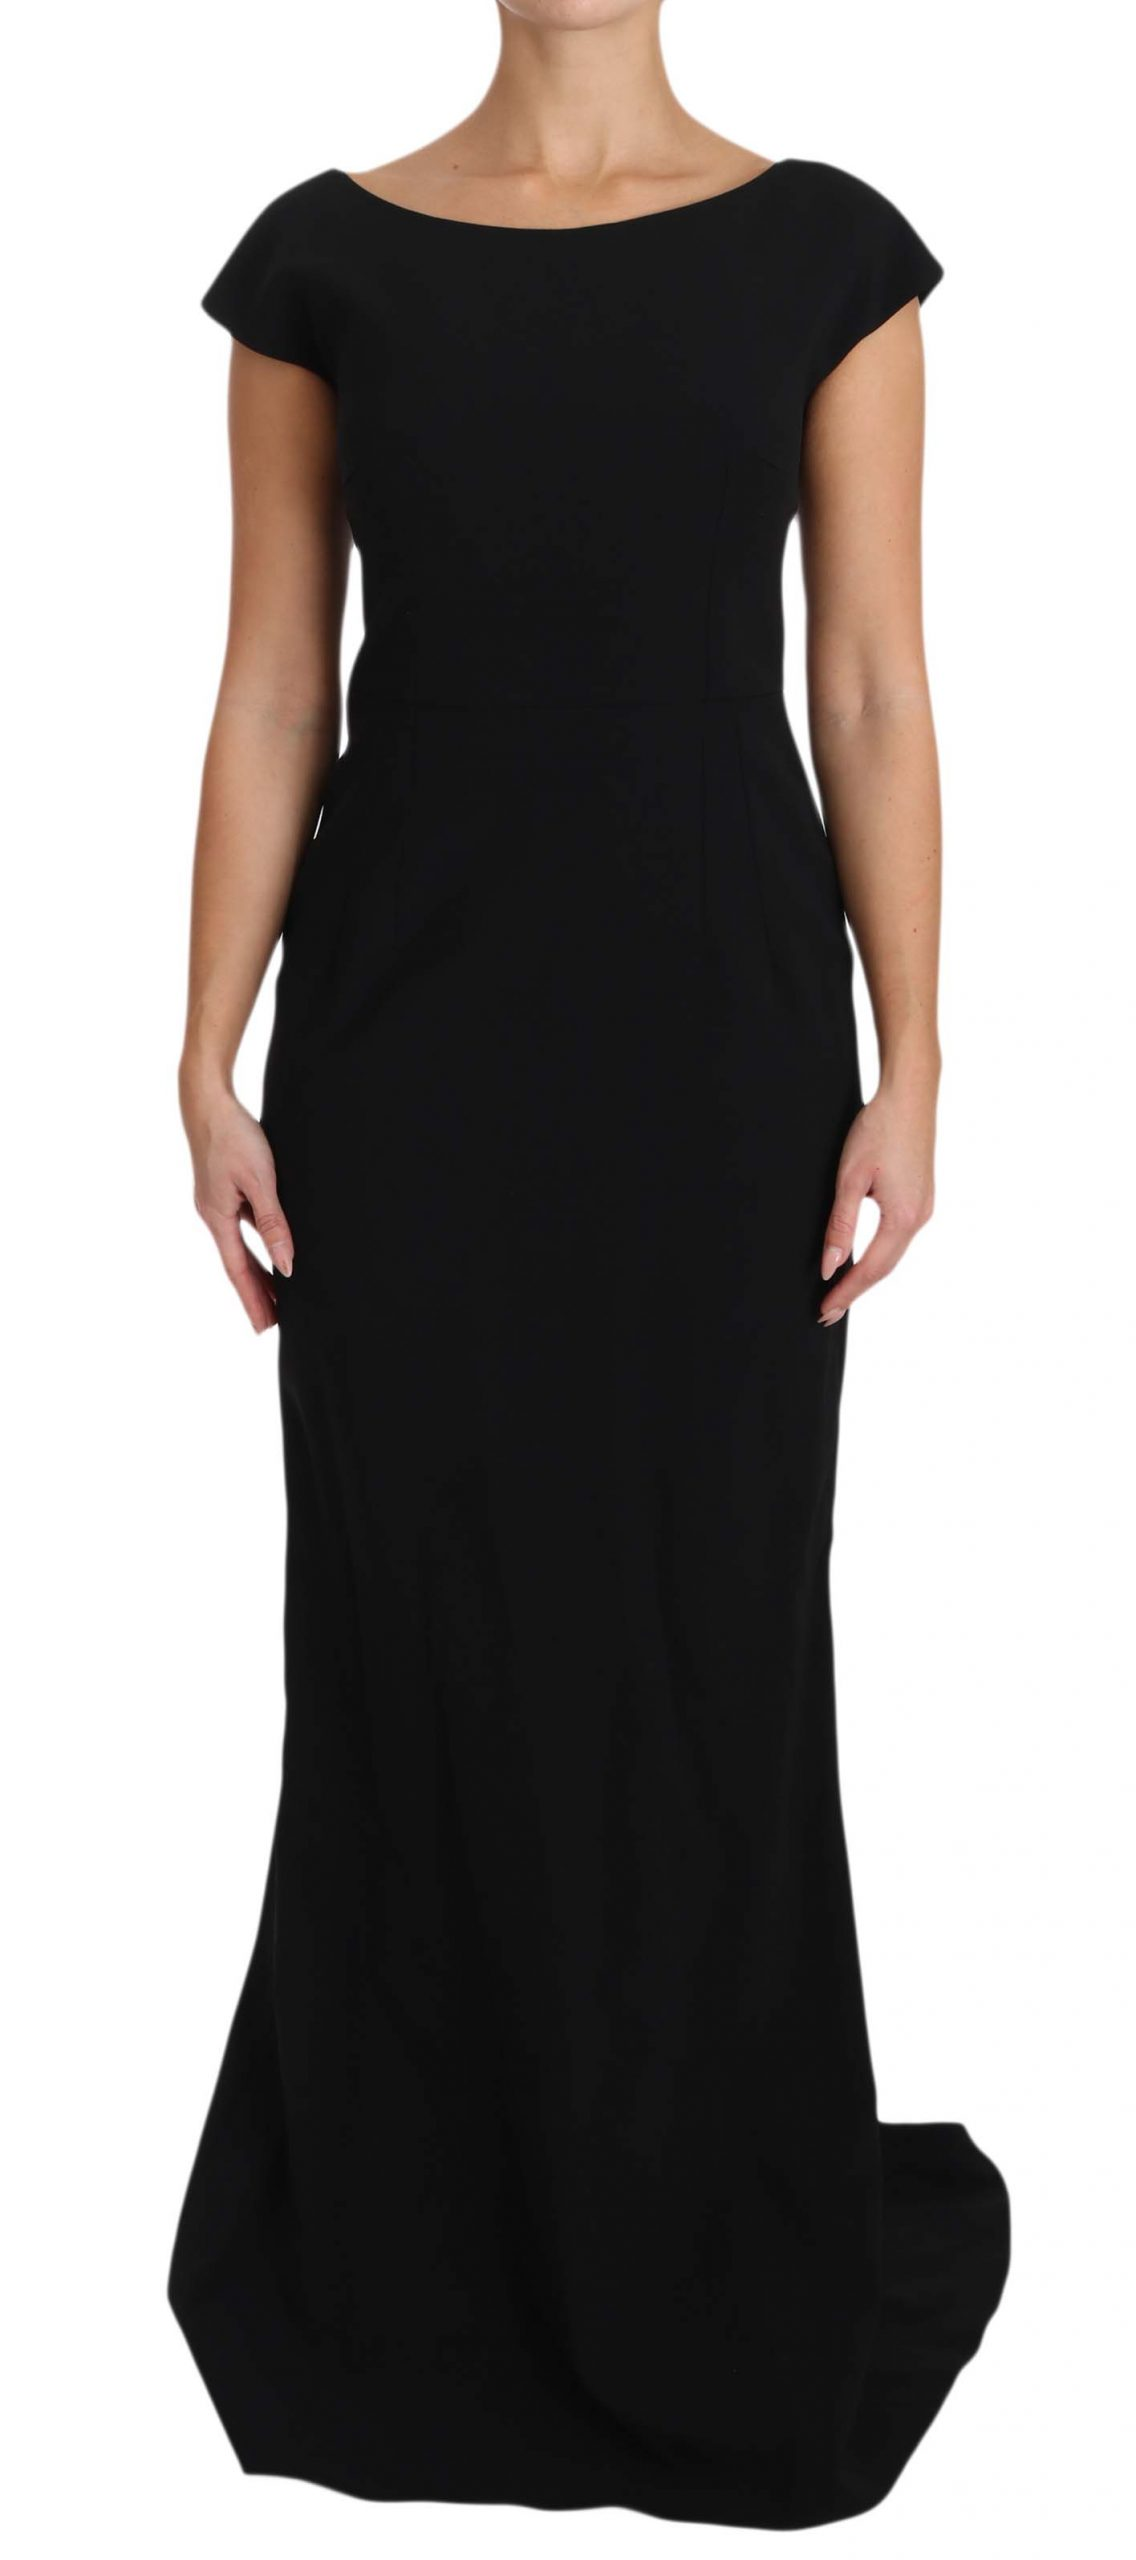 Dolce & Gabbana Women's Stretch Fit Flare Gown Black DR1599 - IT36 | XS